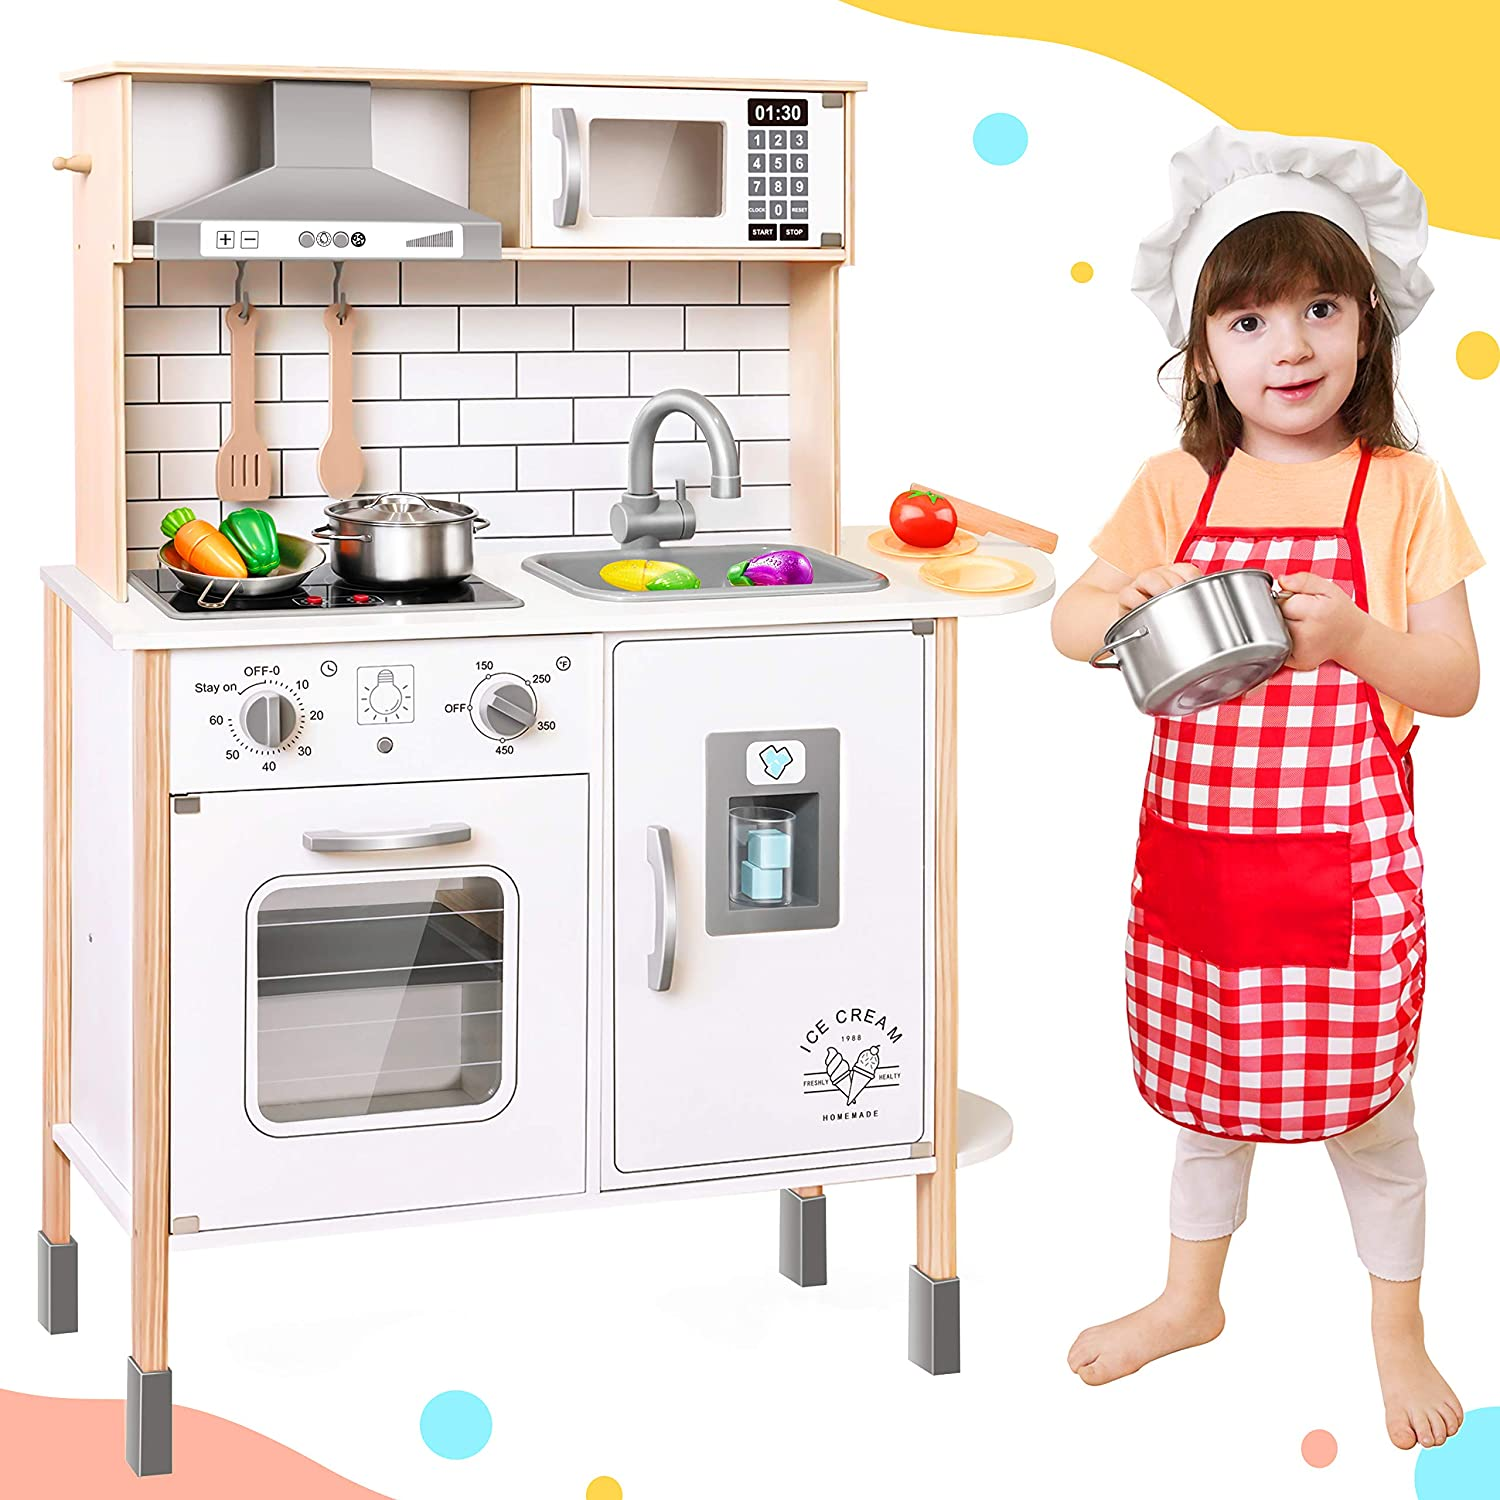 Play-Kitchen-for-Kids with 18 Toy Food & Cookware Accessories Playset Wooden Chef Pretend Play Set for Toddlers with Real Lights & Sounds